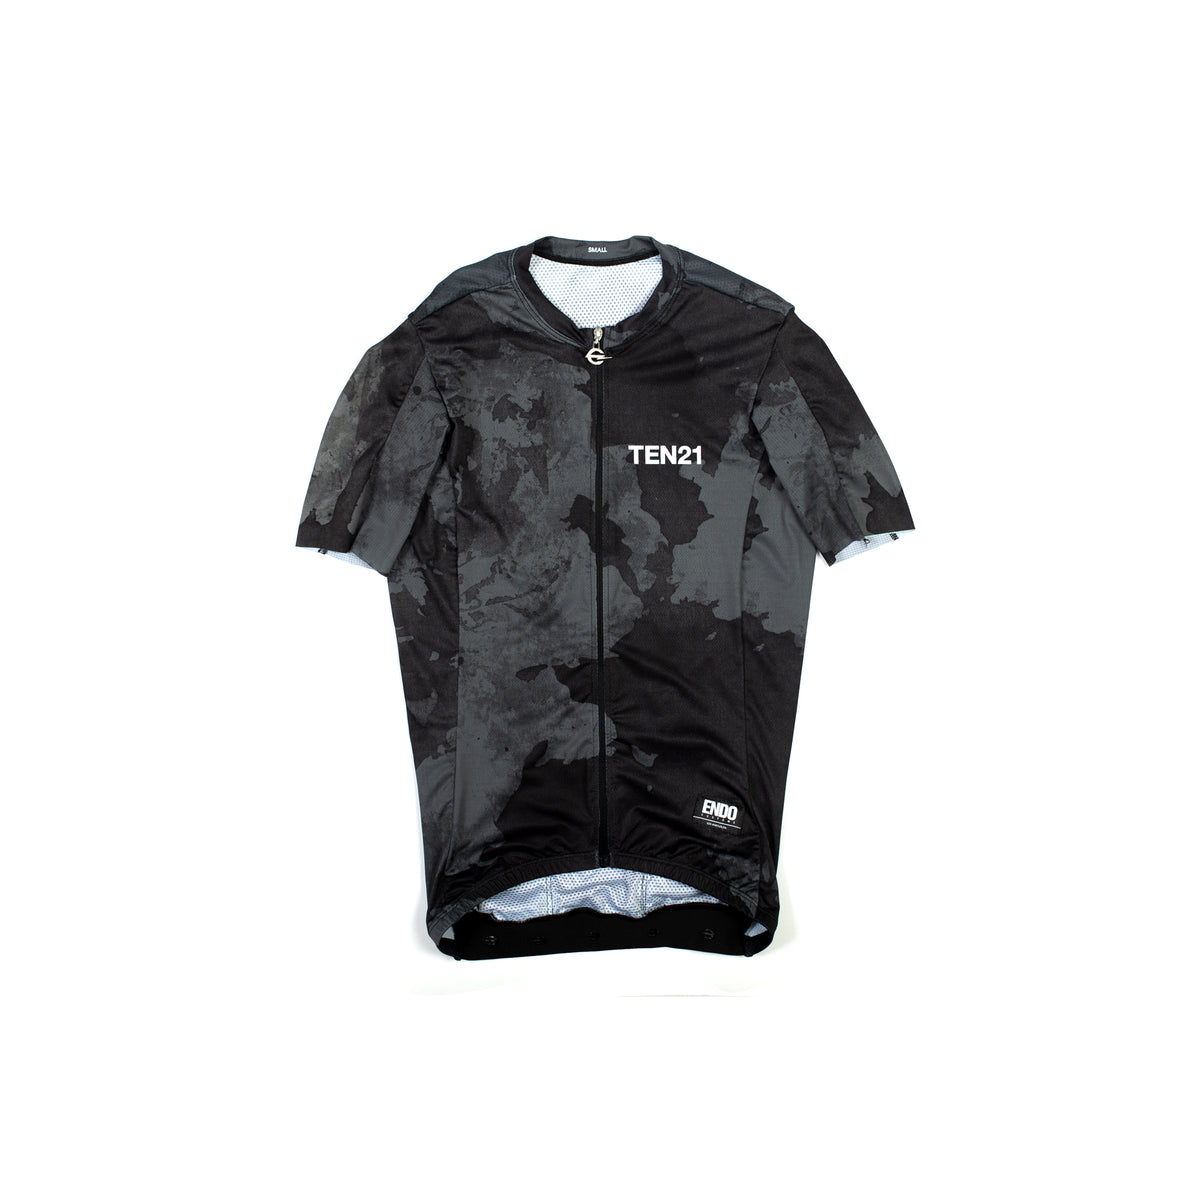 CONCRETE - LADERA 2.0 JERSEY - DARK